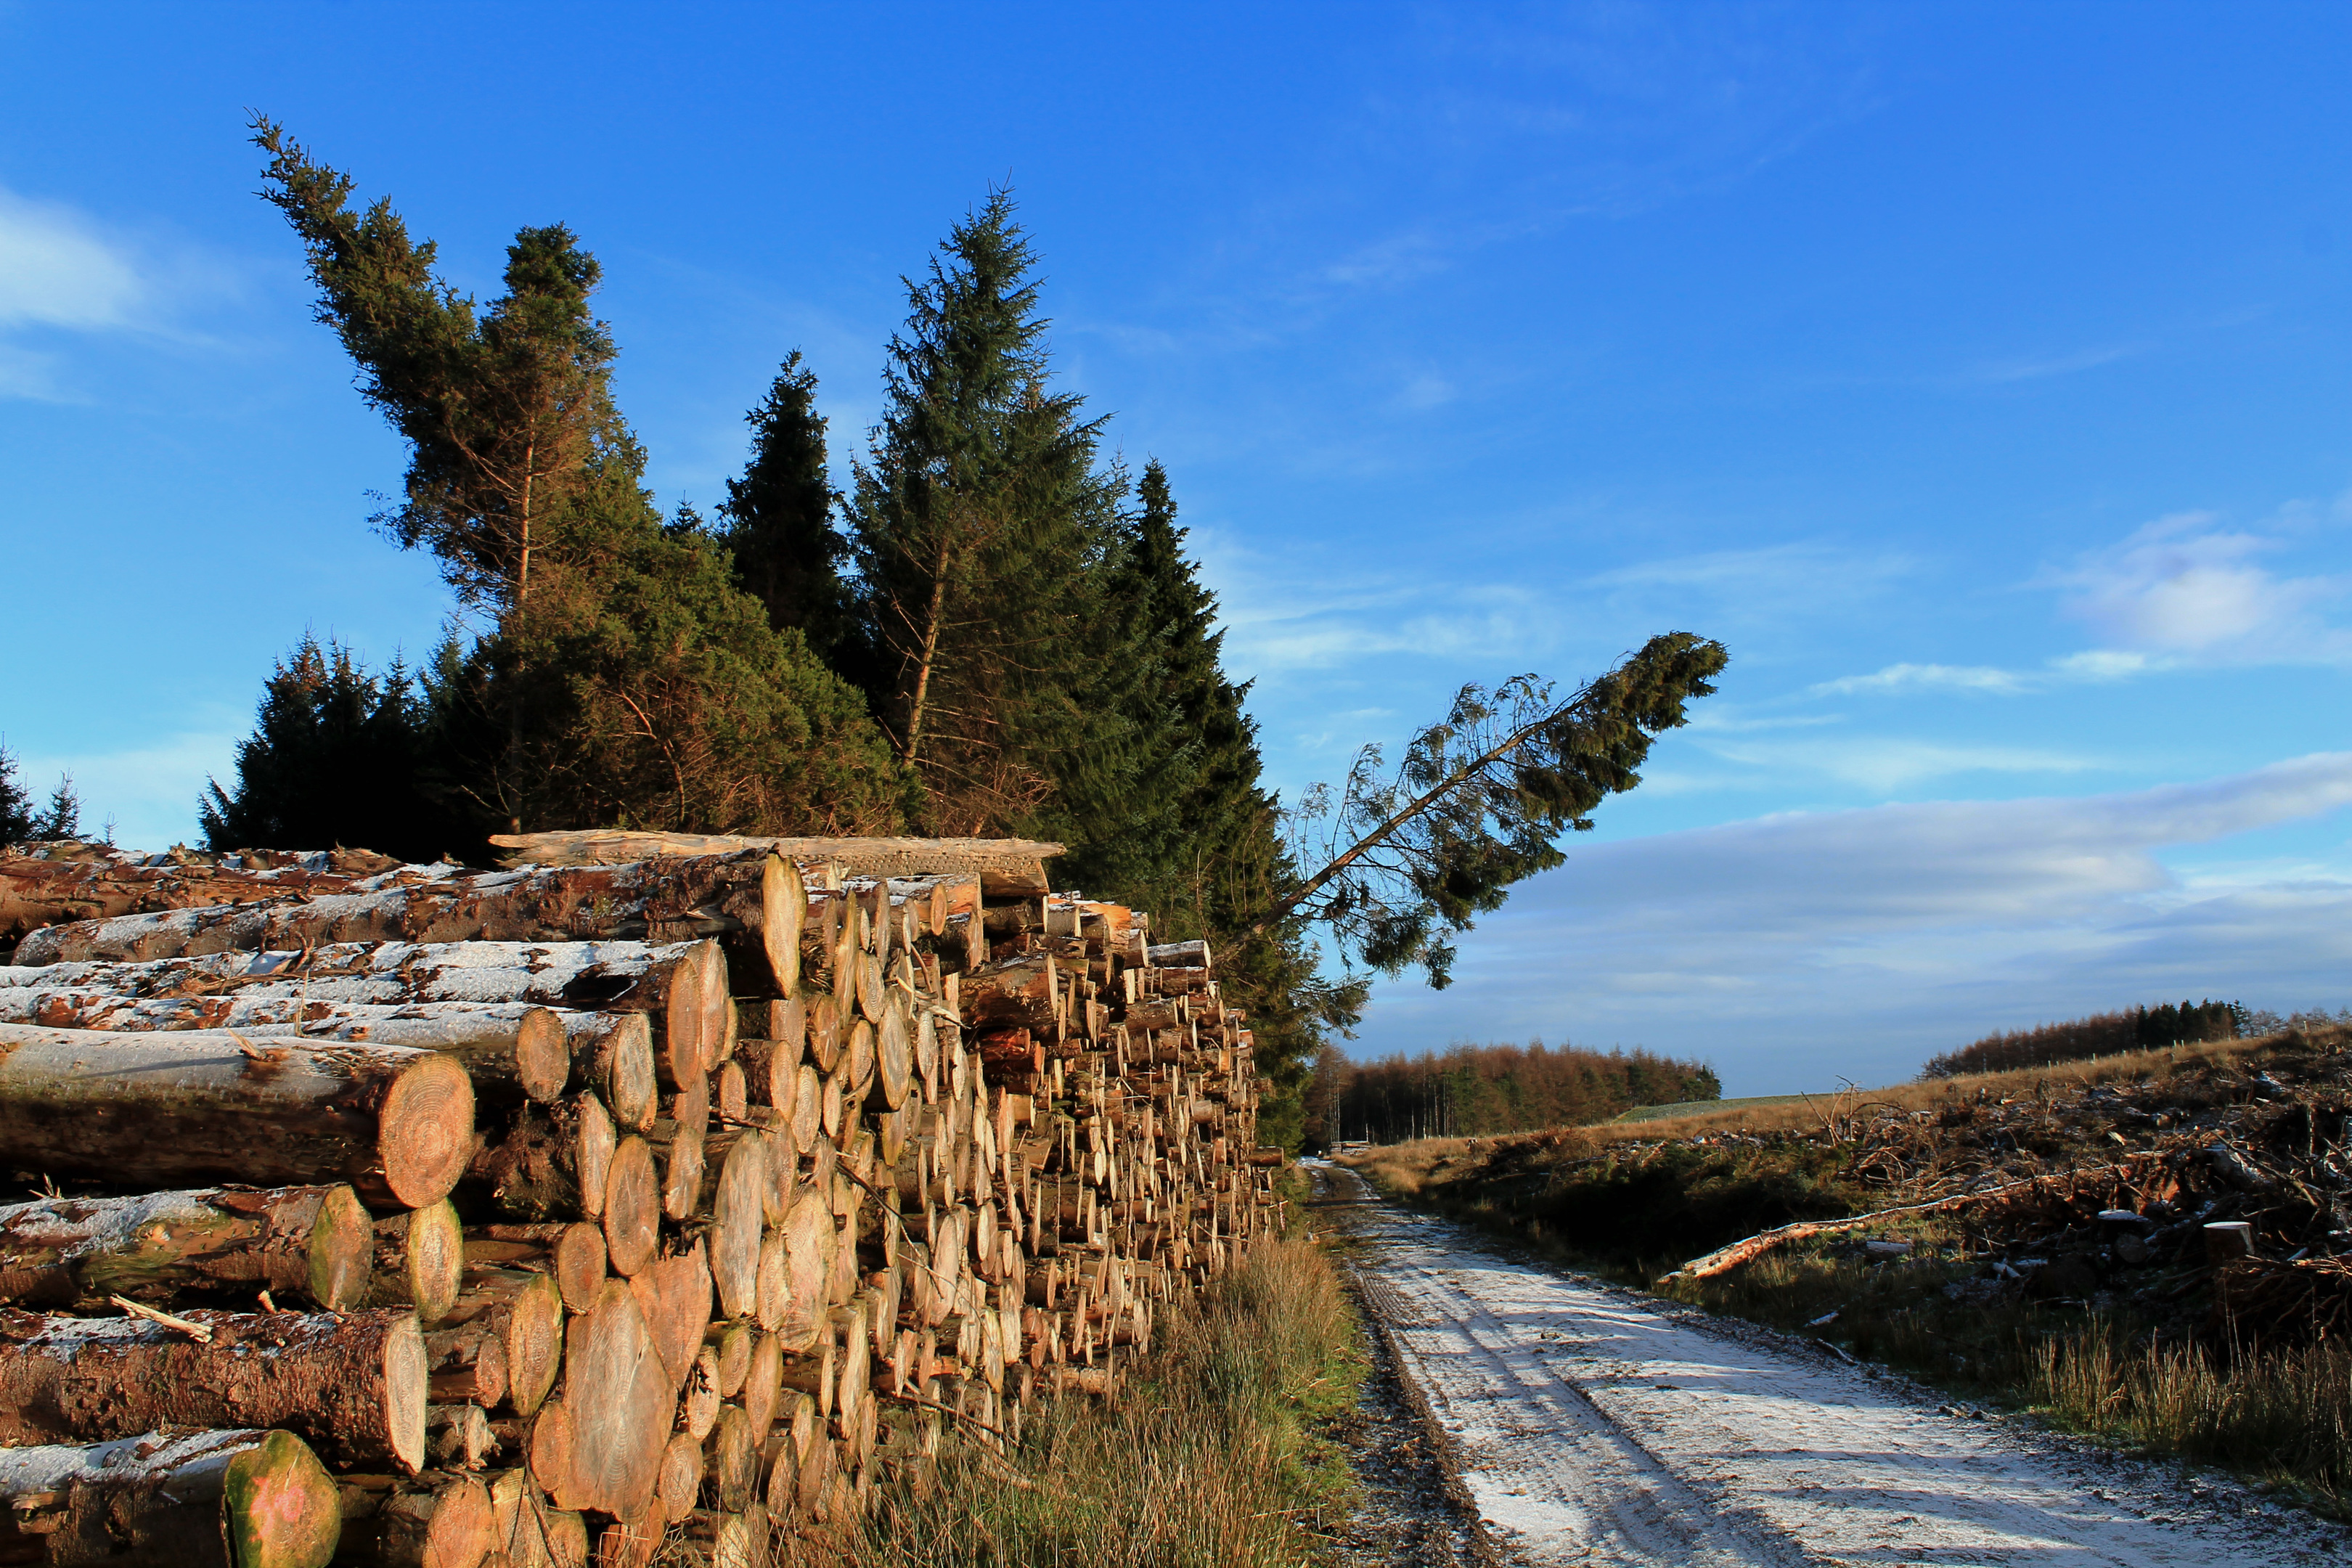 The volume of Scottish timber to be harvested is predicted to rise by 14% by 2025.